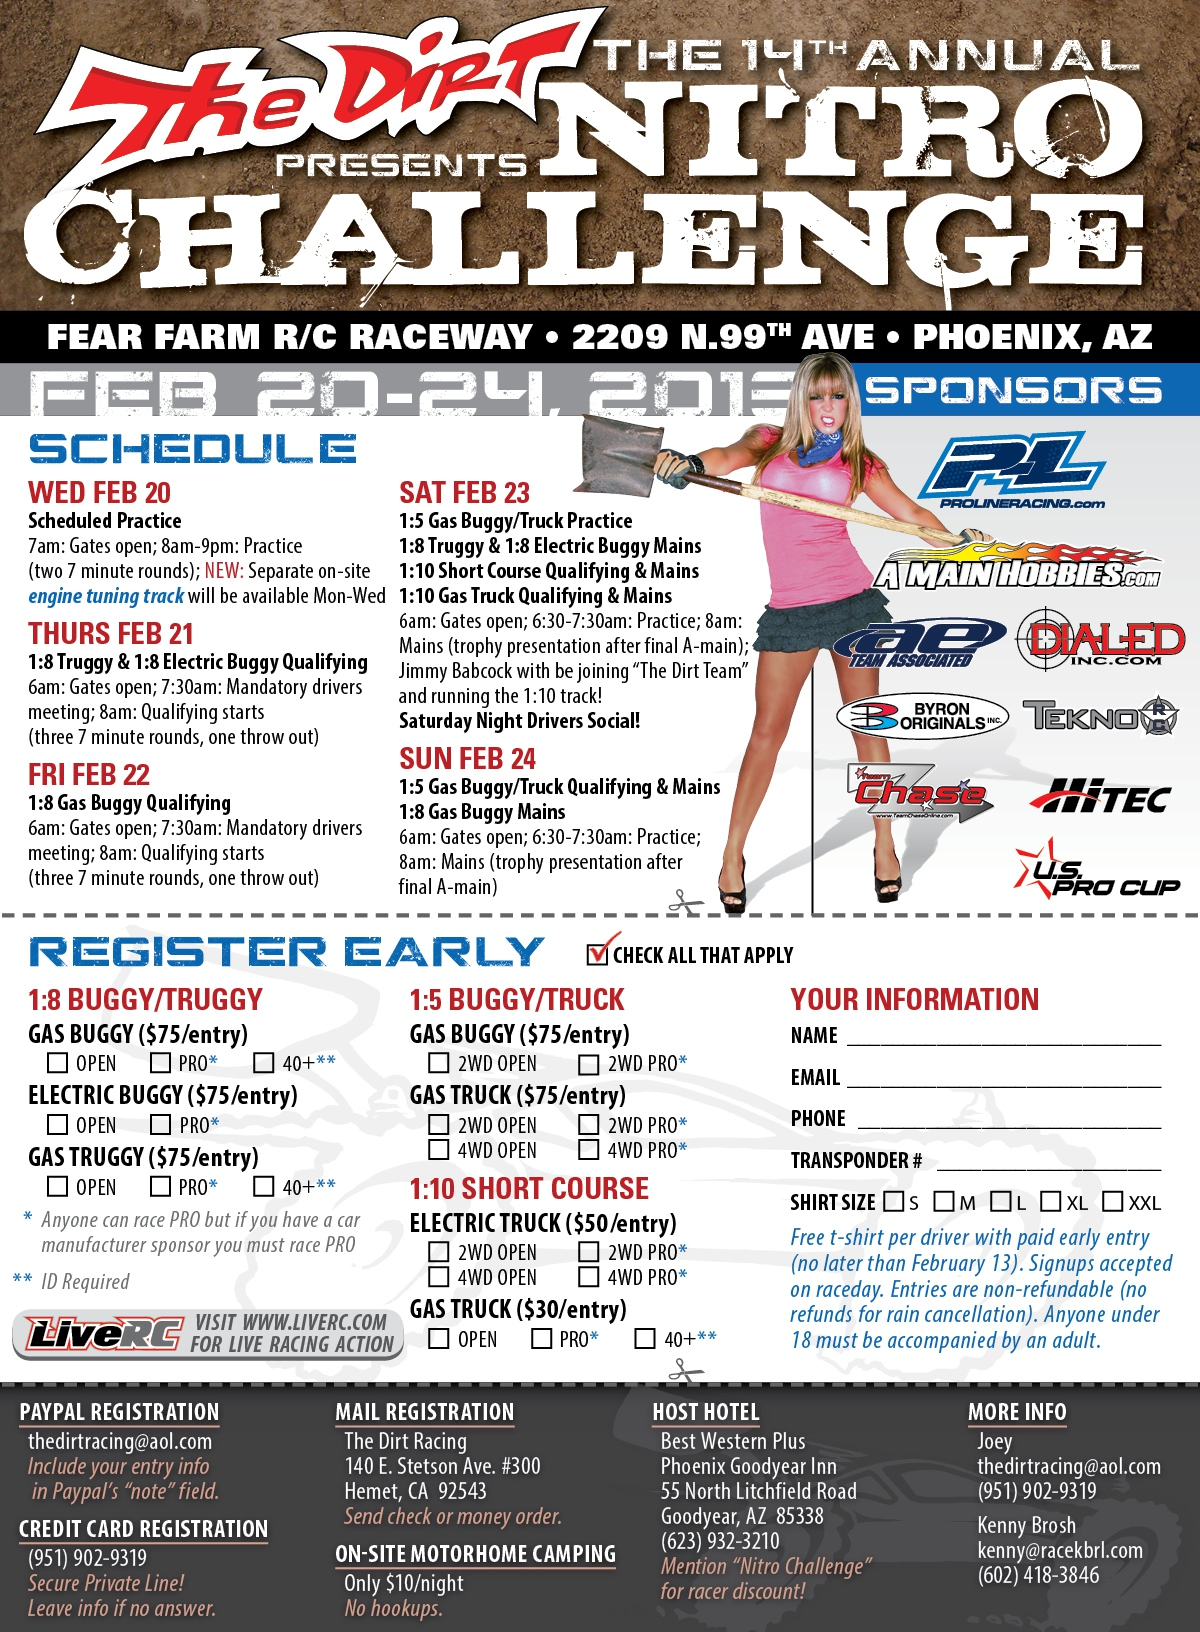 The Dirt Presents the 14th Annual Nitro Challenge